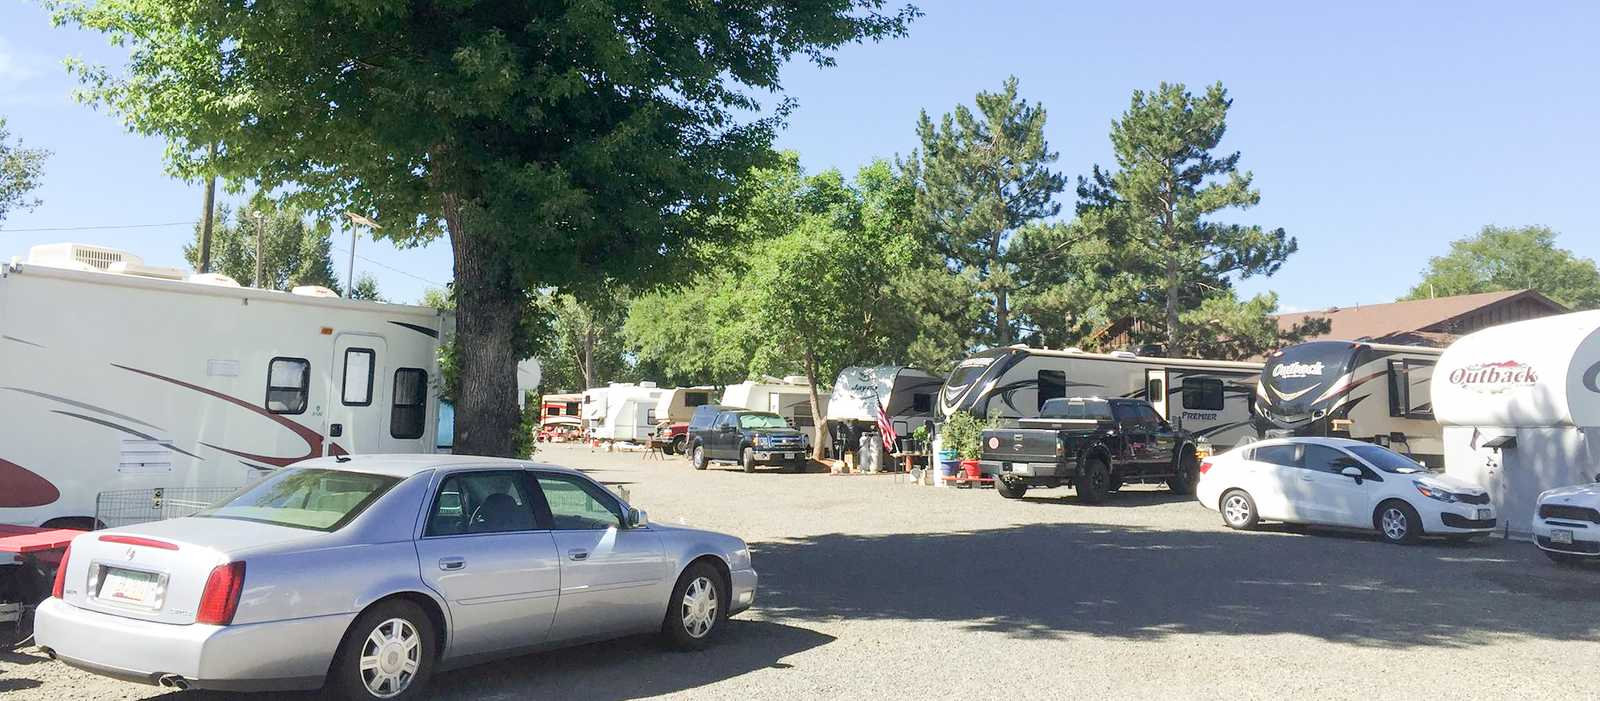 Prospect RV Park in Denver